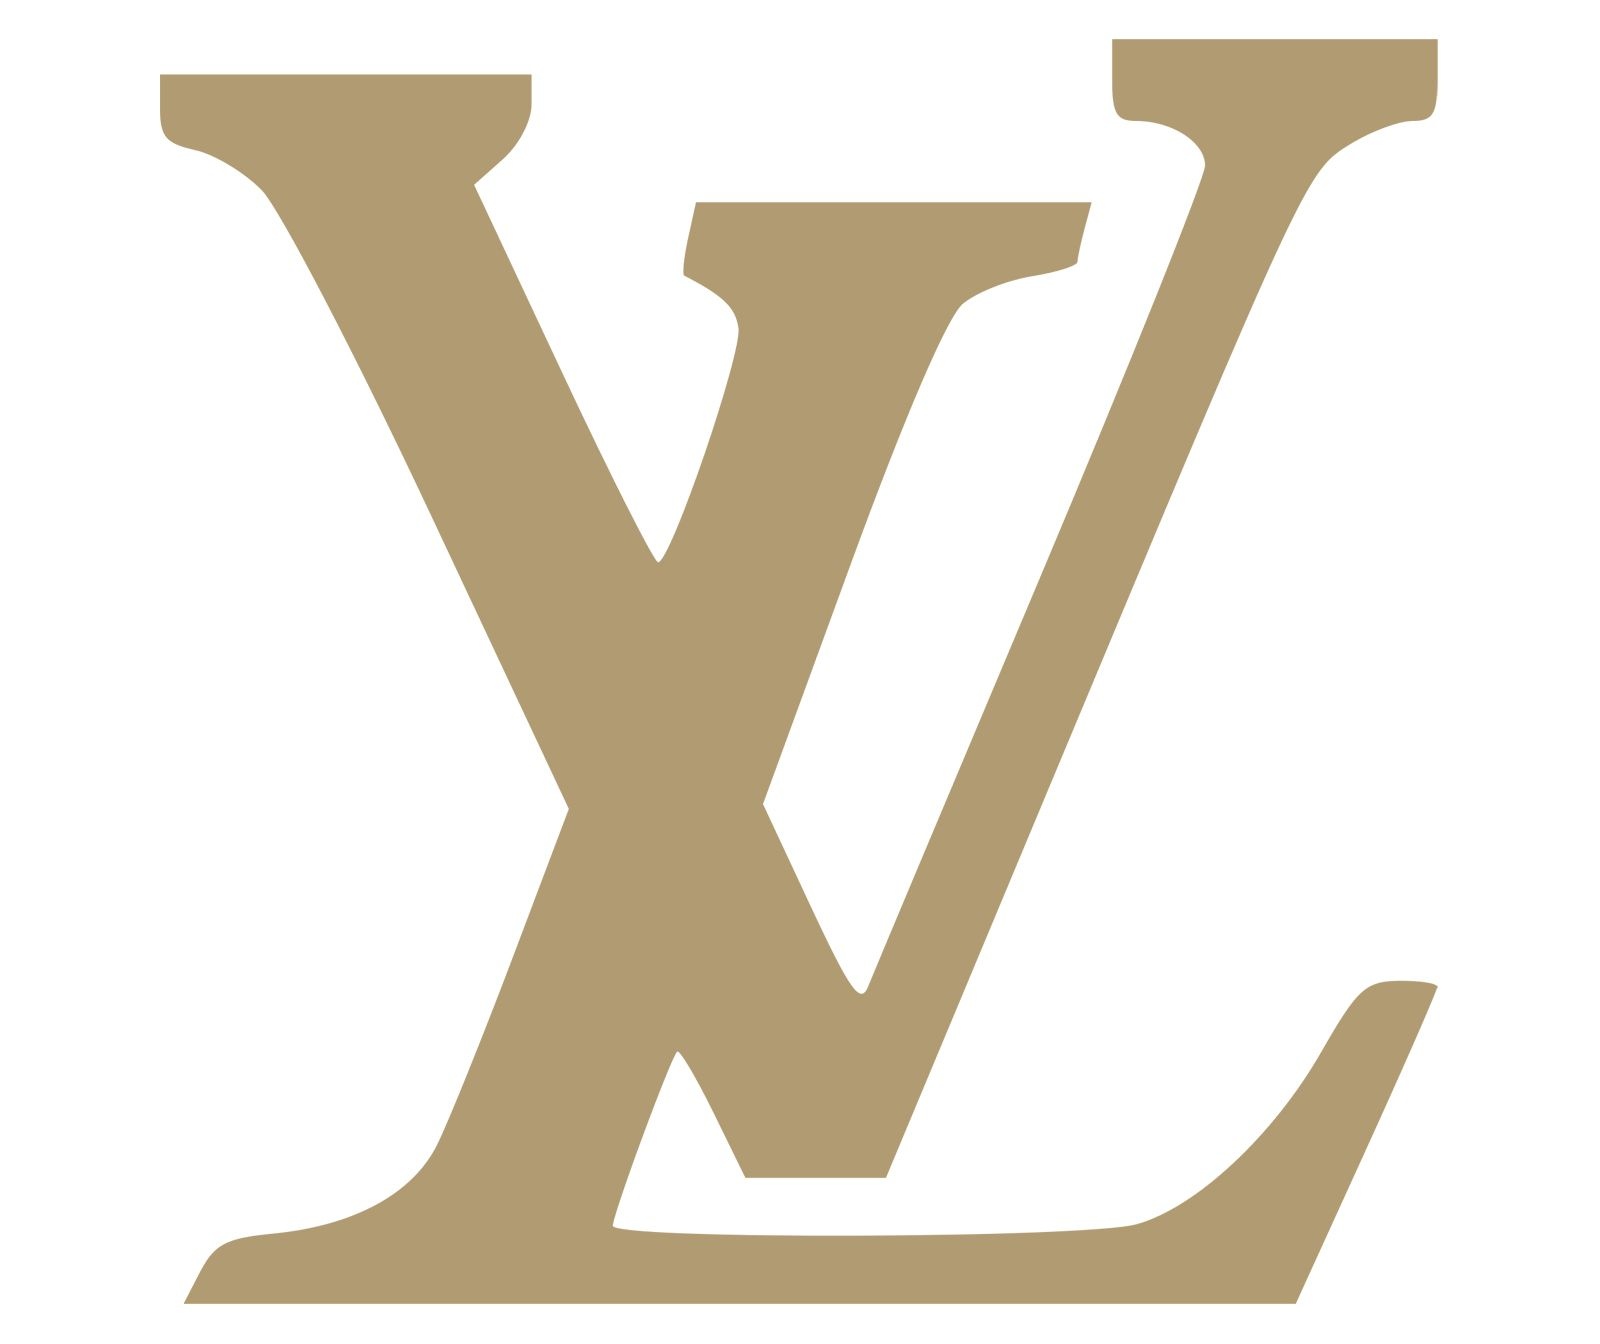 Symbol Louis Vuitton All Logos World Pinterest Louis Vuitton